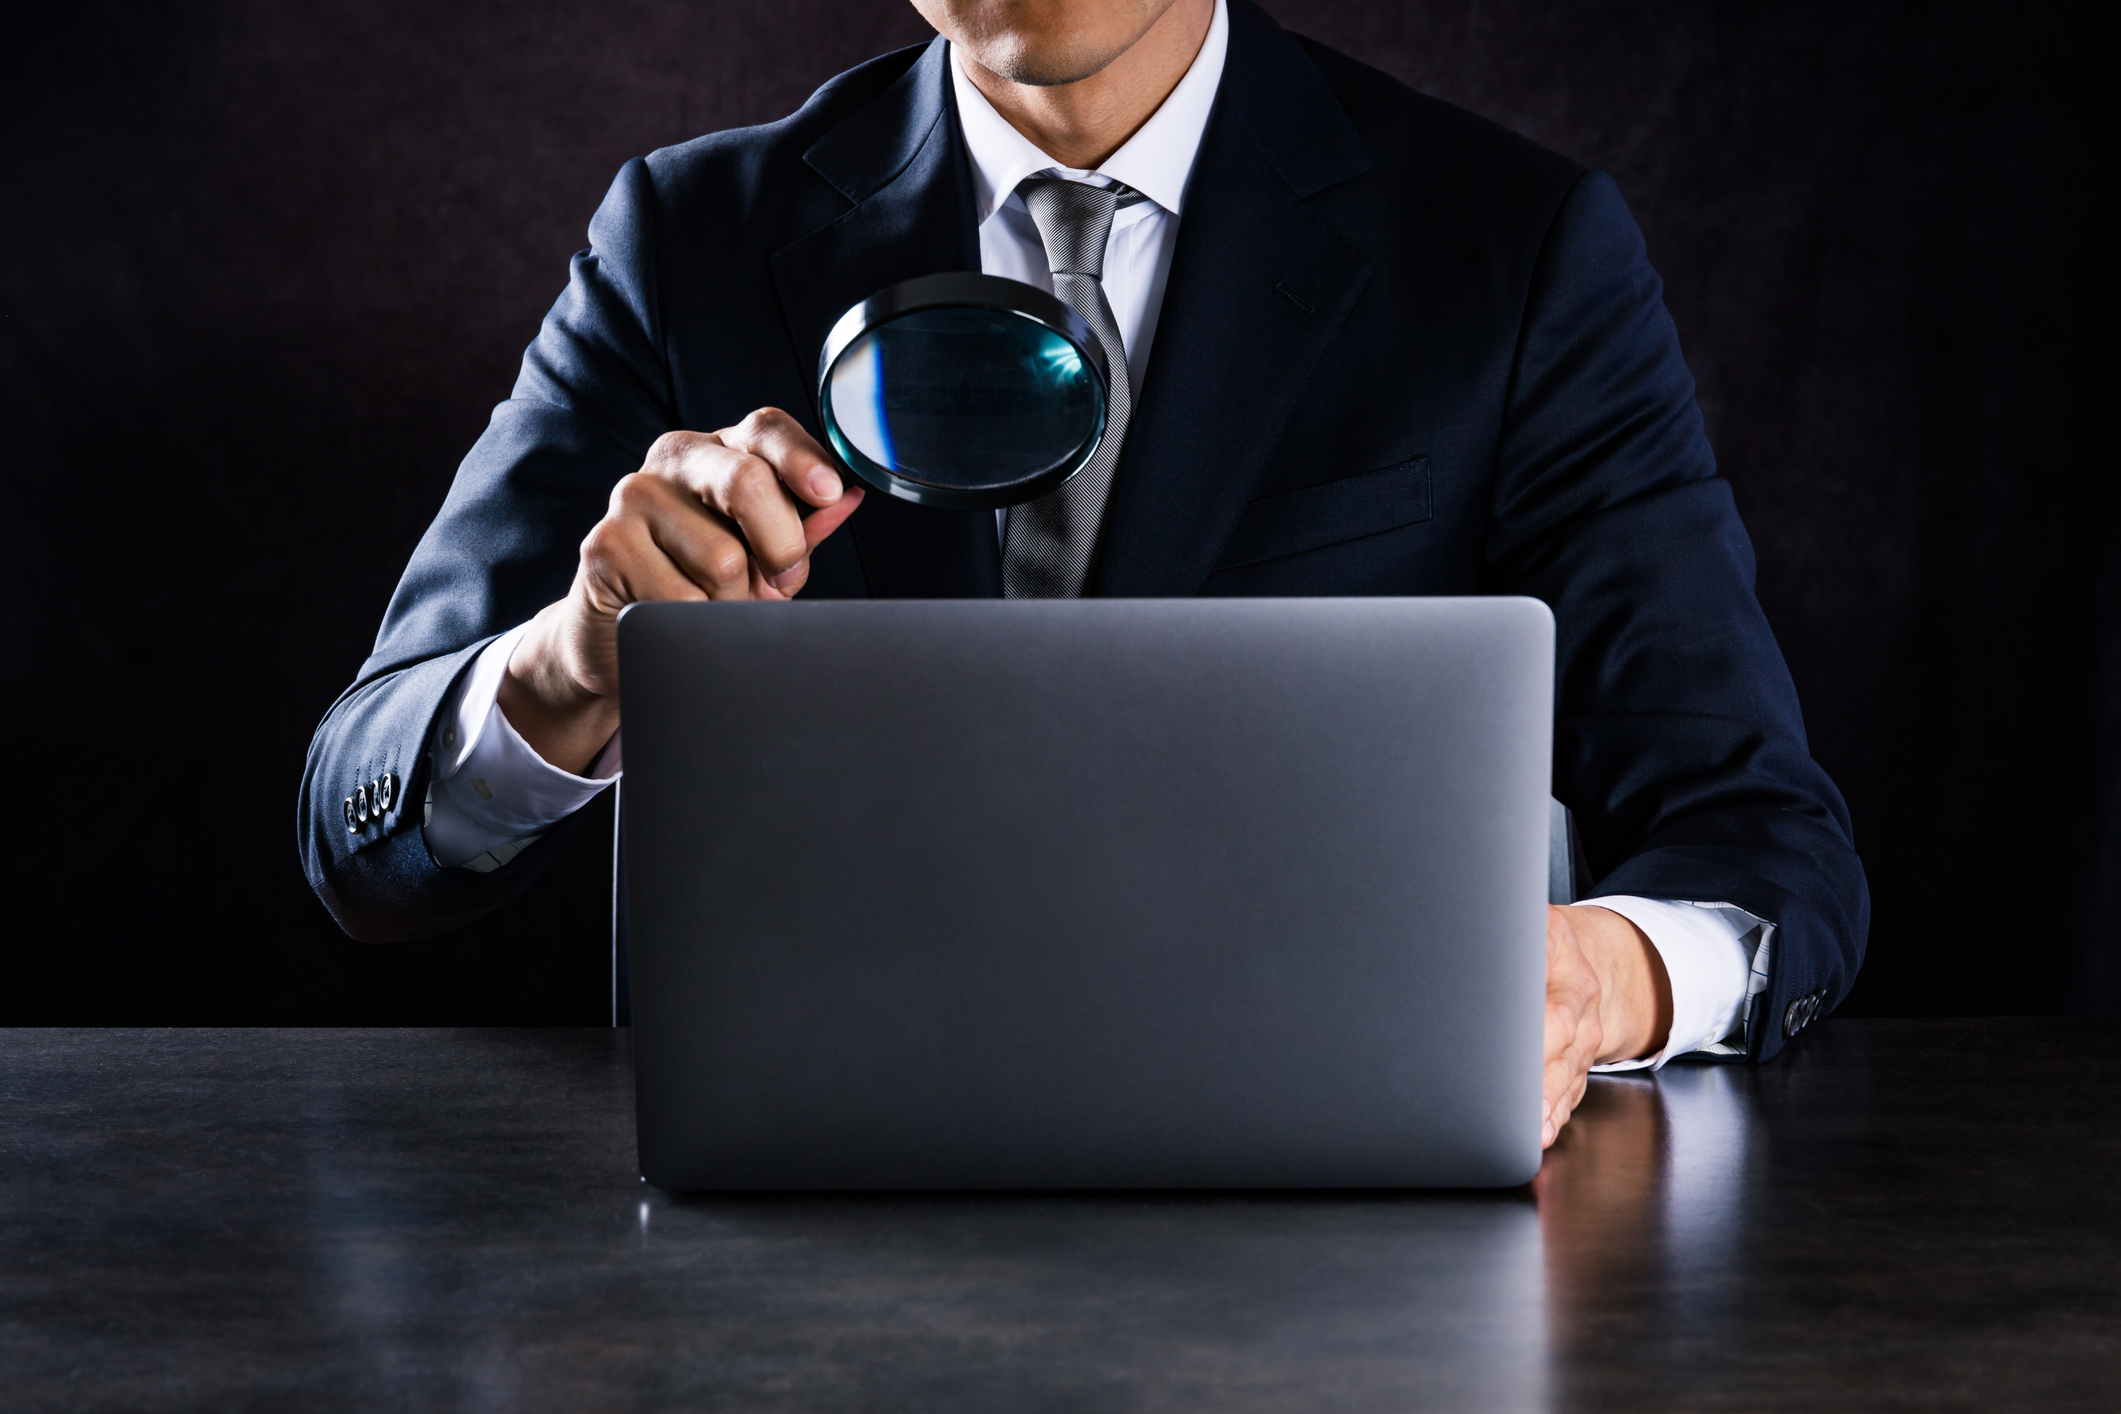 financial advisor wearing a suit and tie looking at an open laptop screen showing the best financial advisor website